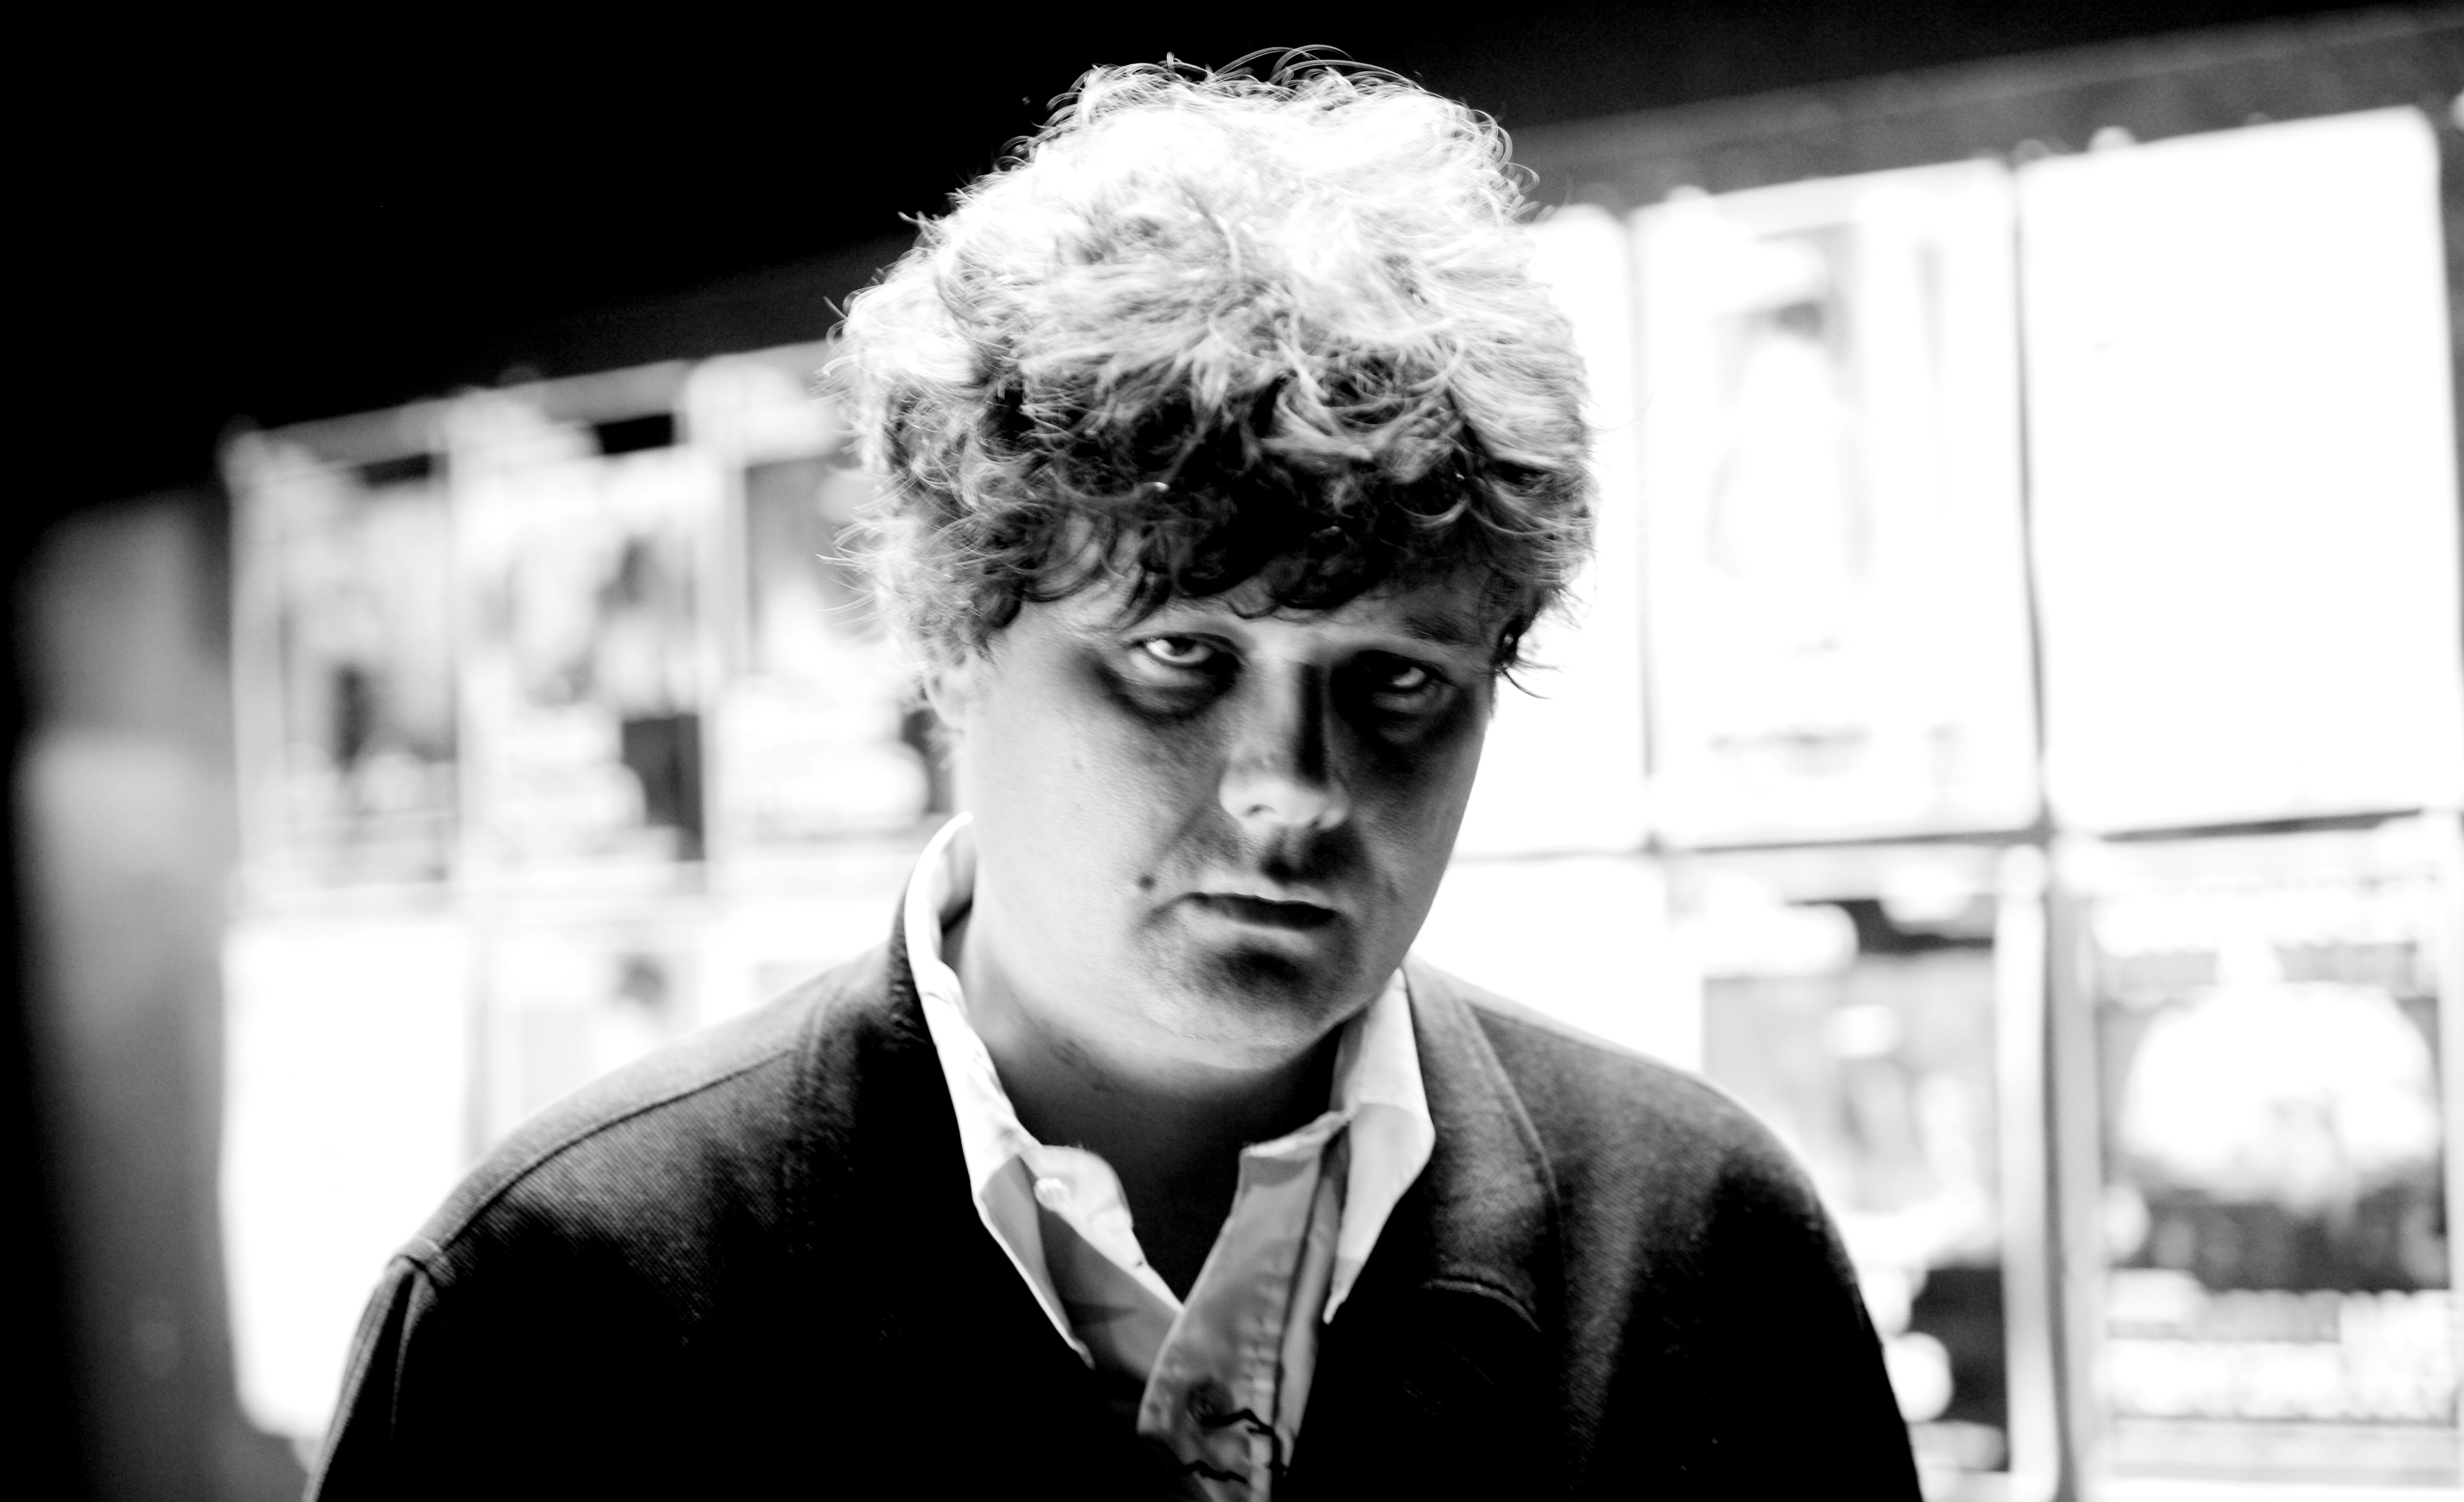 CAMBRIDGE, ENGLAND - 28th JUNE: Canadian singer and guitarist Ron Sexsmith posed at the Cambridge Junction in Cambridge, Engl